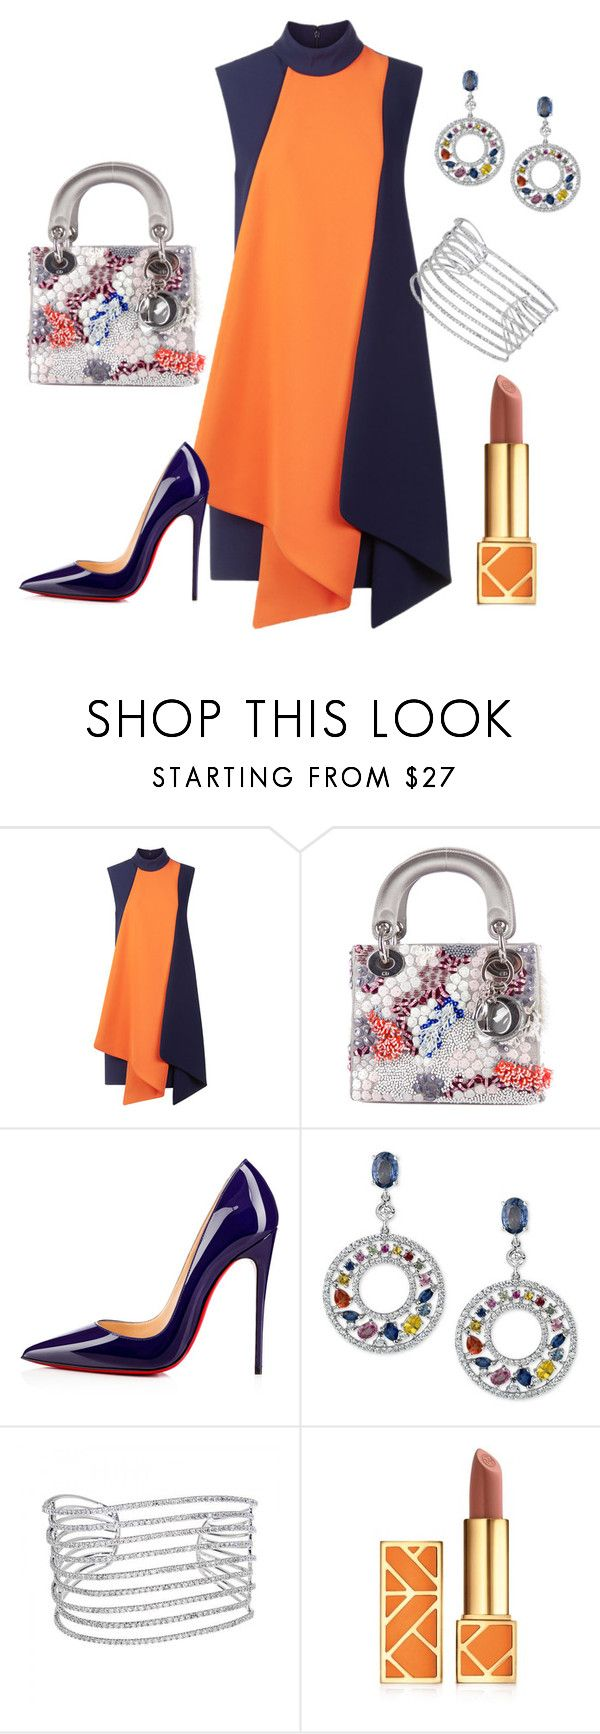 """Victoria Beckham Dress"" by arta13 ❤ liked on Polyvore featuring Victoria, Victoria Beckham, Christian Dior, Christian Louboutin, Allurez and Tory Burch"